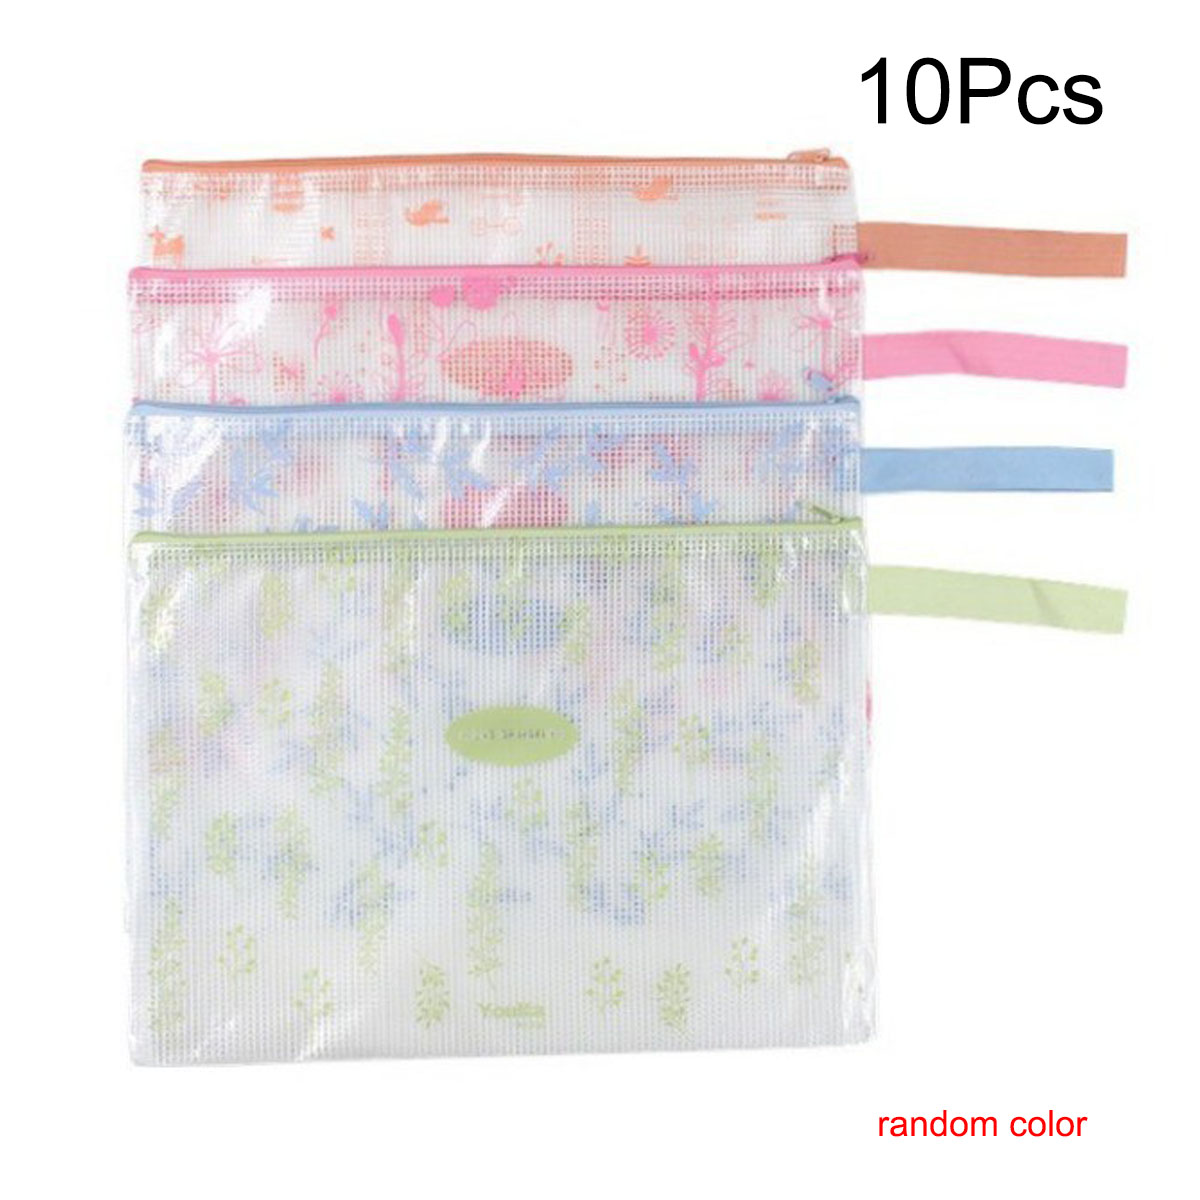 10 Pcs A4 Size Plastic Zip Document Filing Folder Bag Storage Pouch